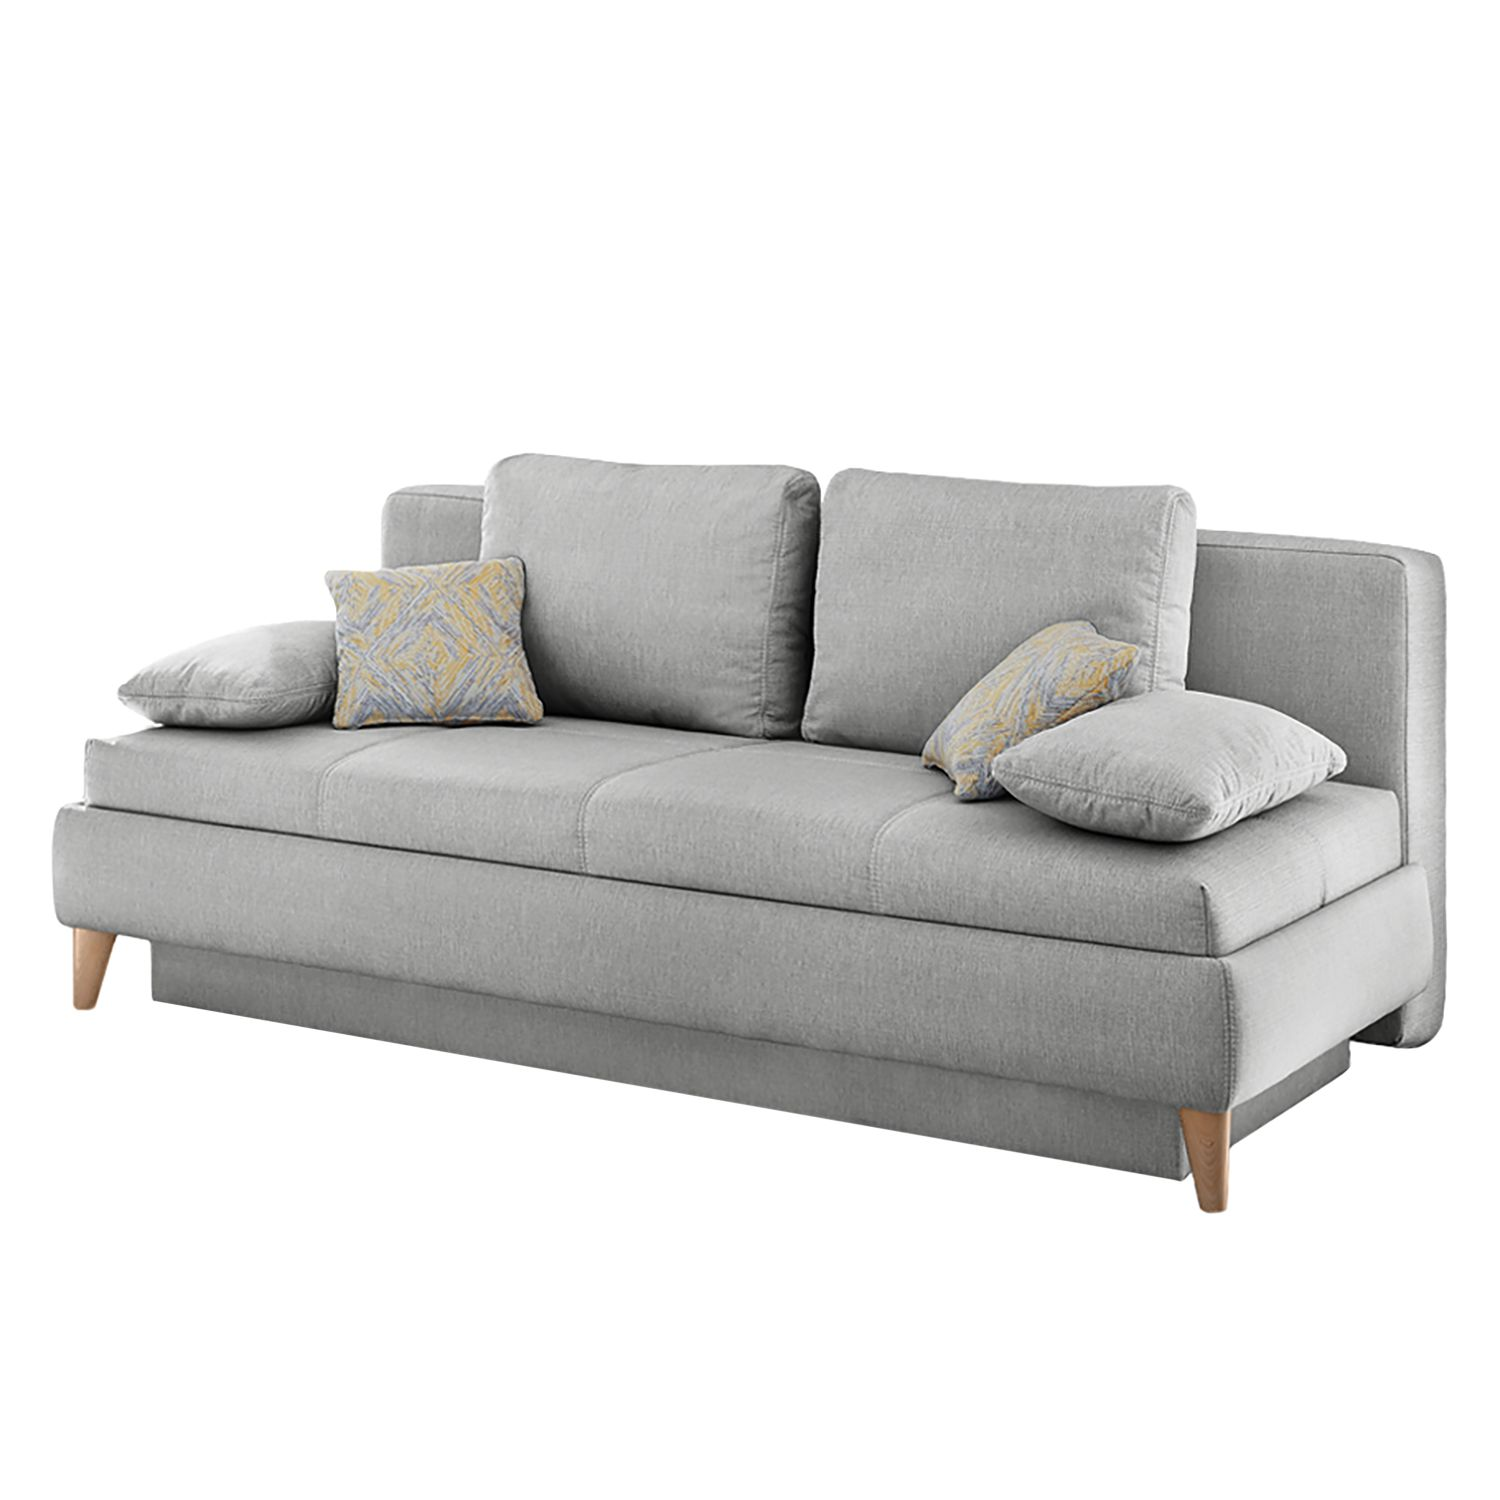 Schlafsofa Design Schlafsofa Design Gallery Of Couch Matratze Luxus